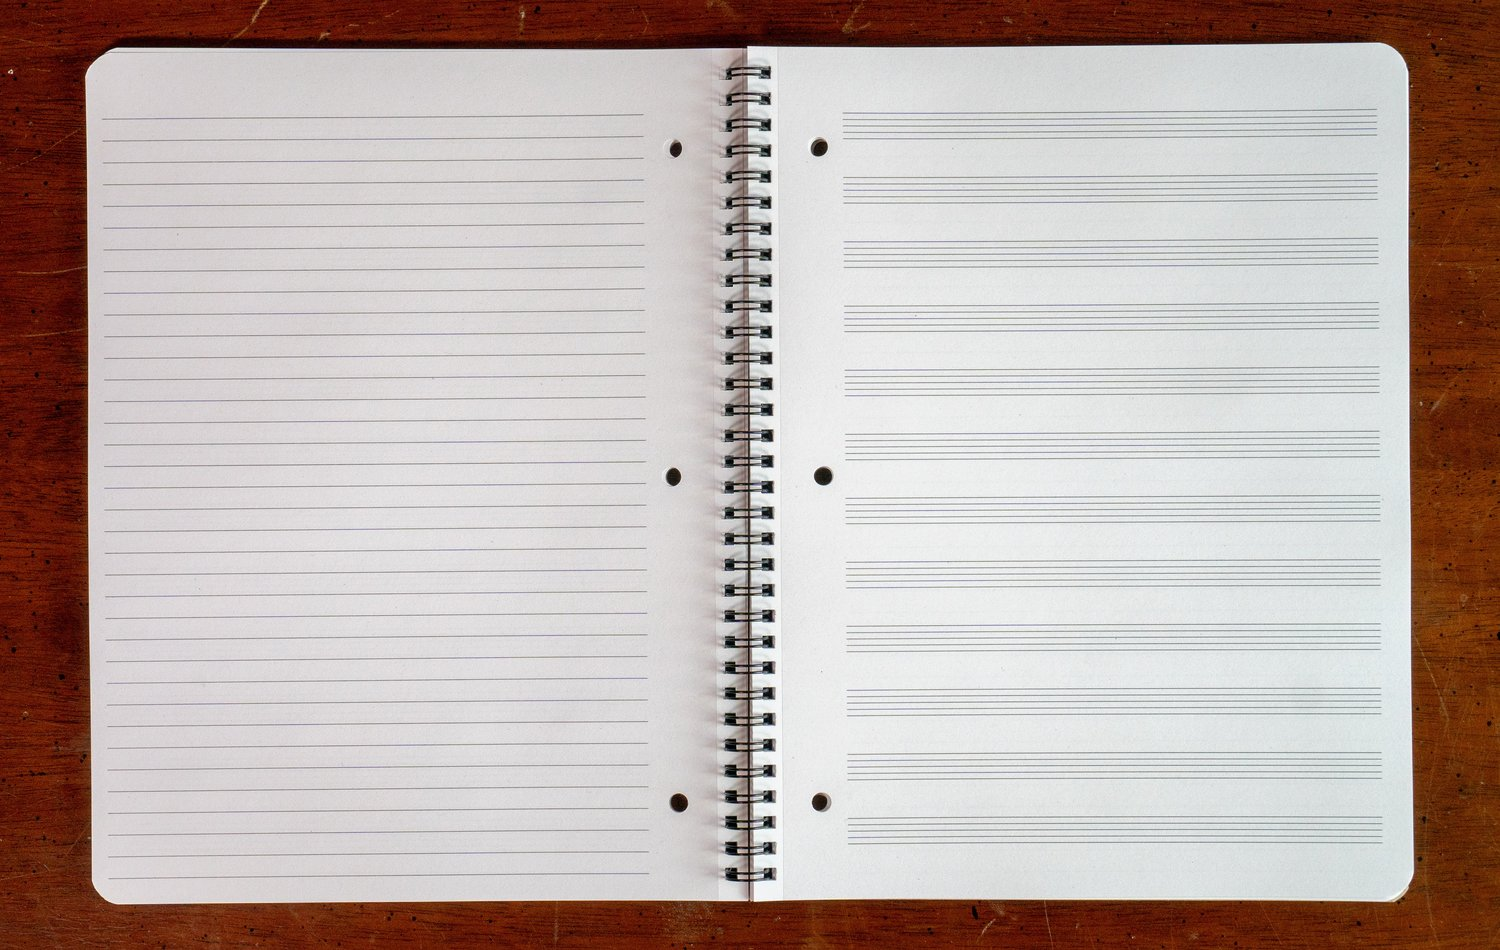 The Ruled Edition - College-ruled lines on the left, 12 staves on the right, and each page is perforated and three-hole-punched.